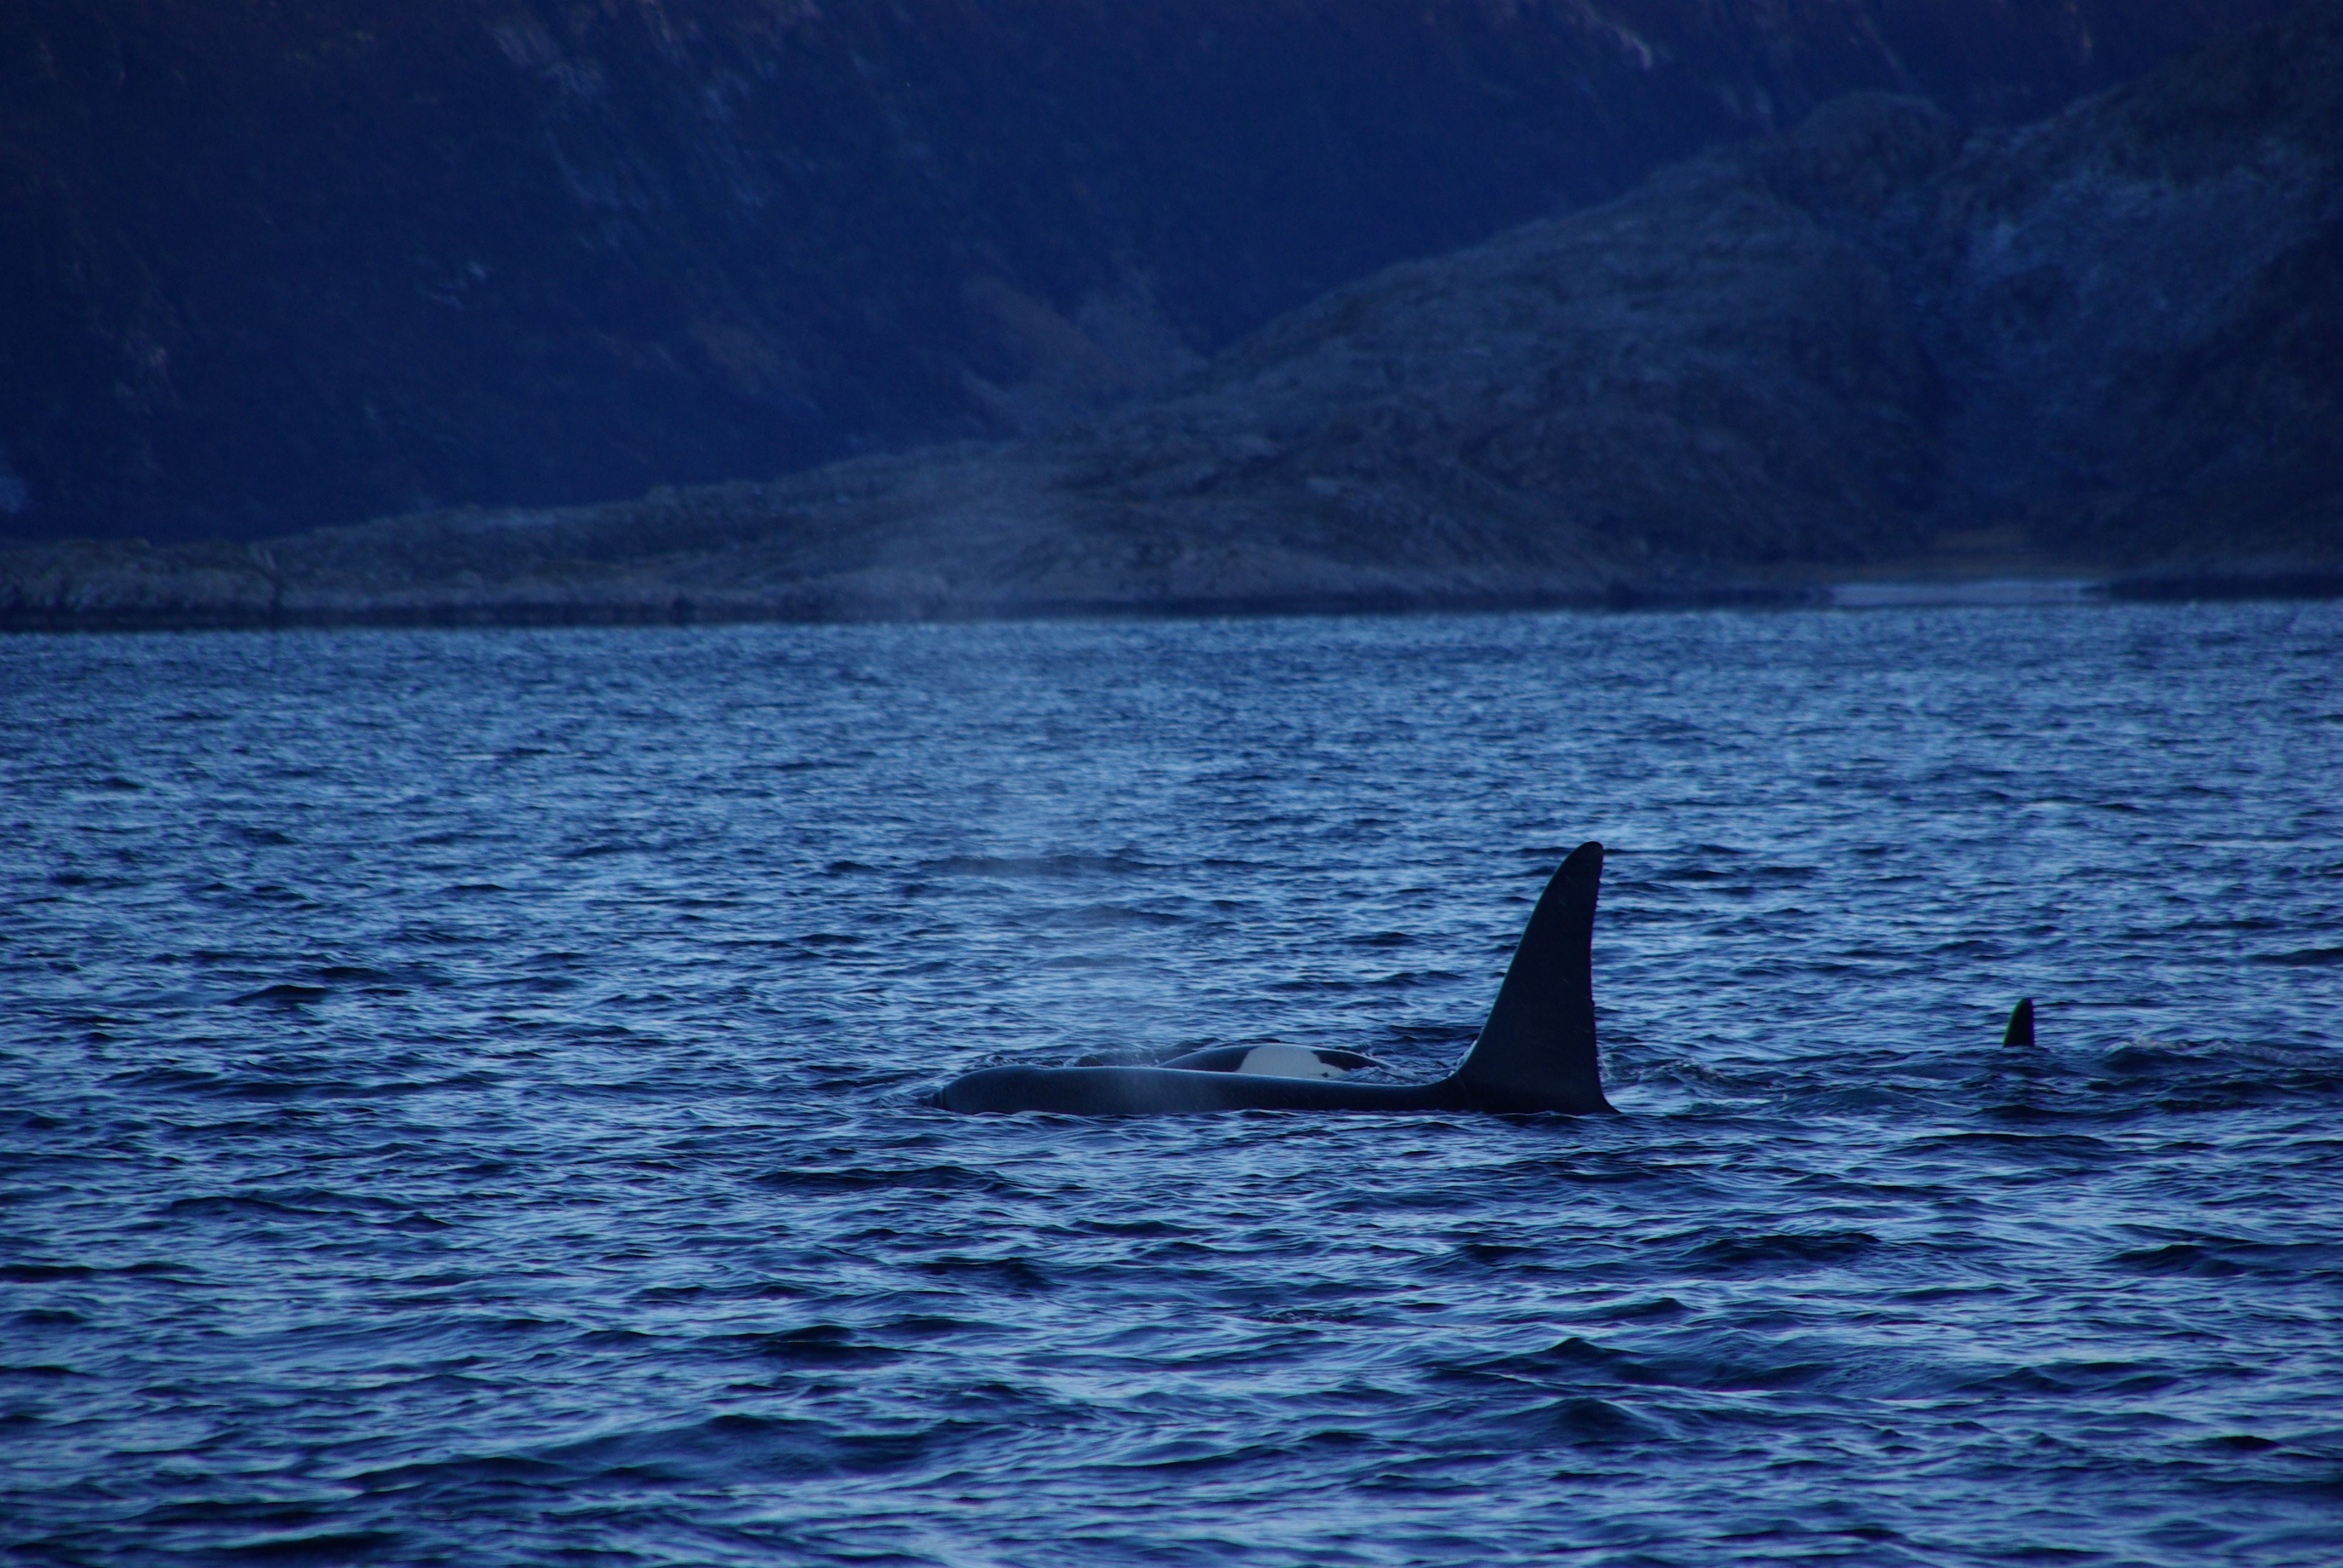 Whale Watching with MS Senjafjell – Solbø Maritime Adventure